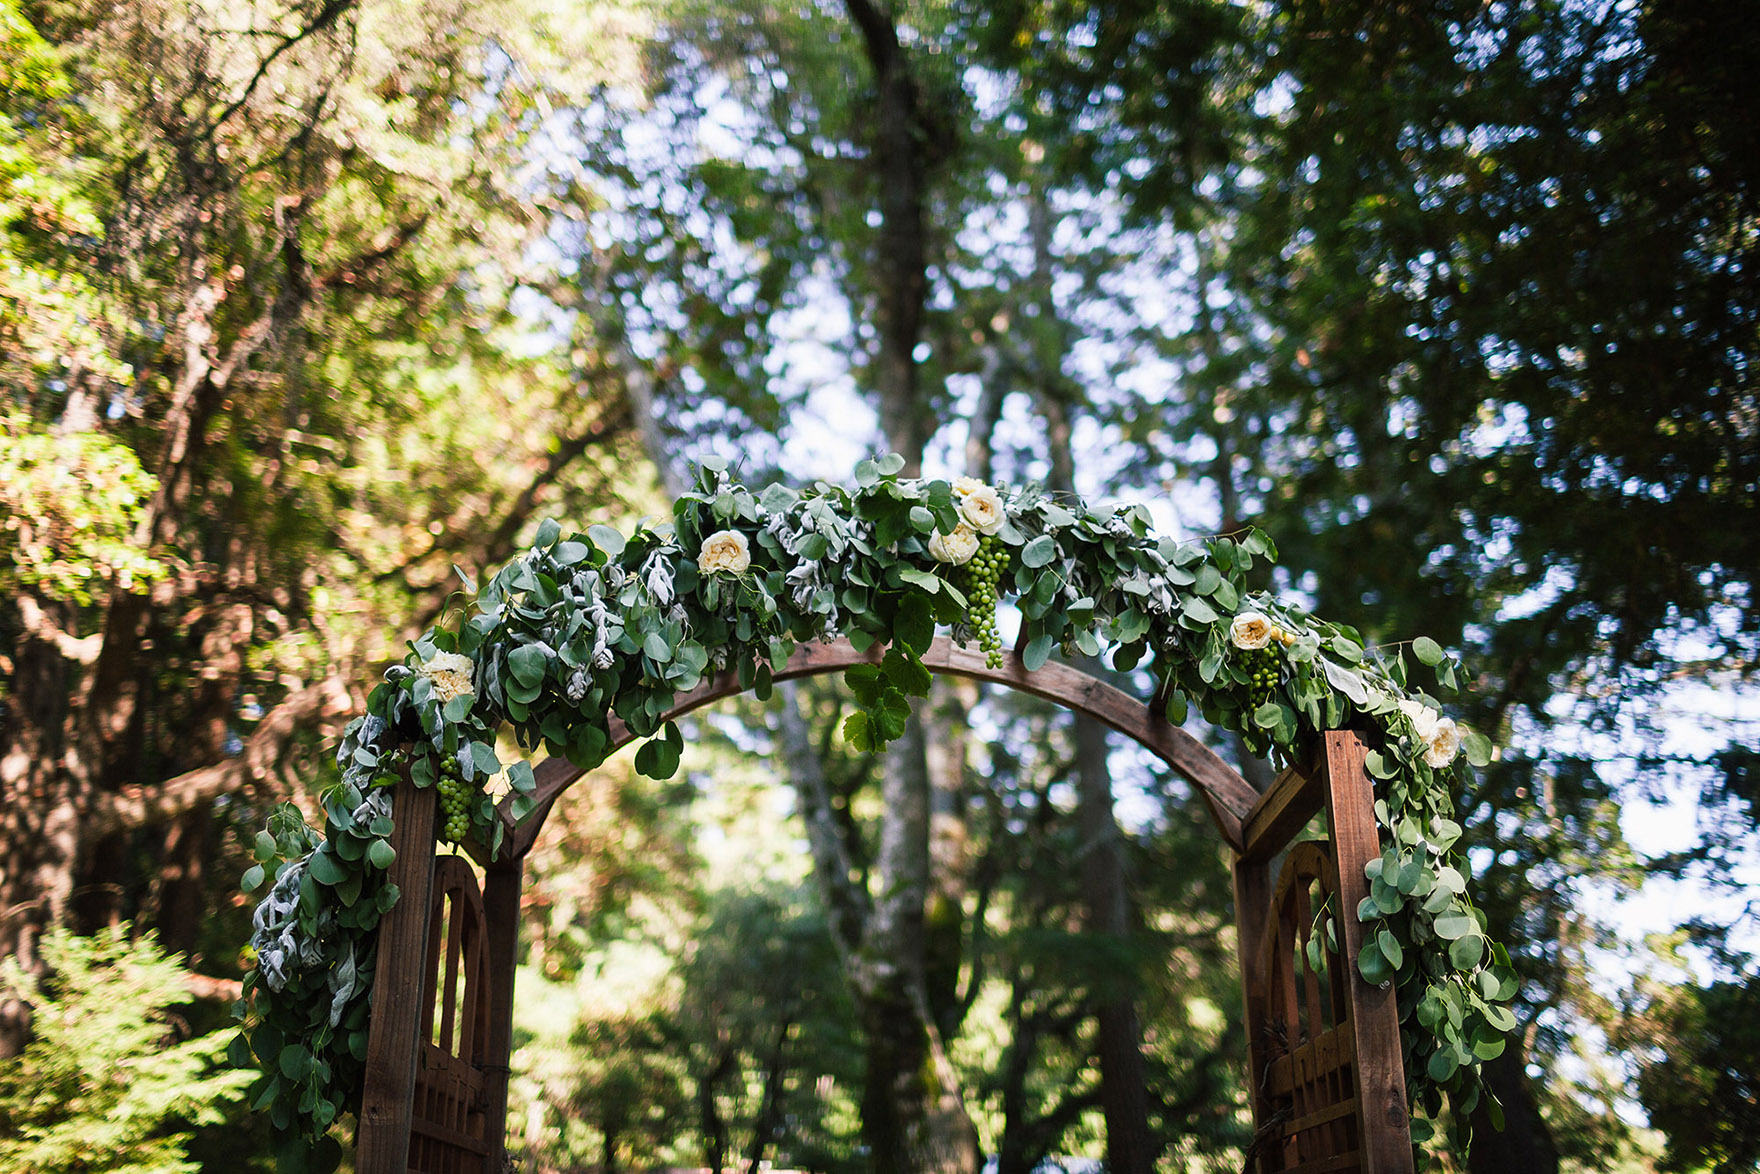 flowers decorate this archway arbor where bride and groom stand during their redwood ridge ceremony saying vows and first kiss among the tall redwoods redwood ridge estate wedding the perfect los gatos wedding venue santa cruz wedding venue